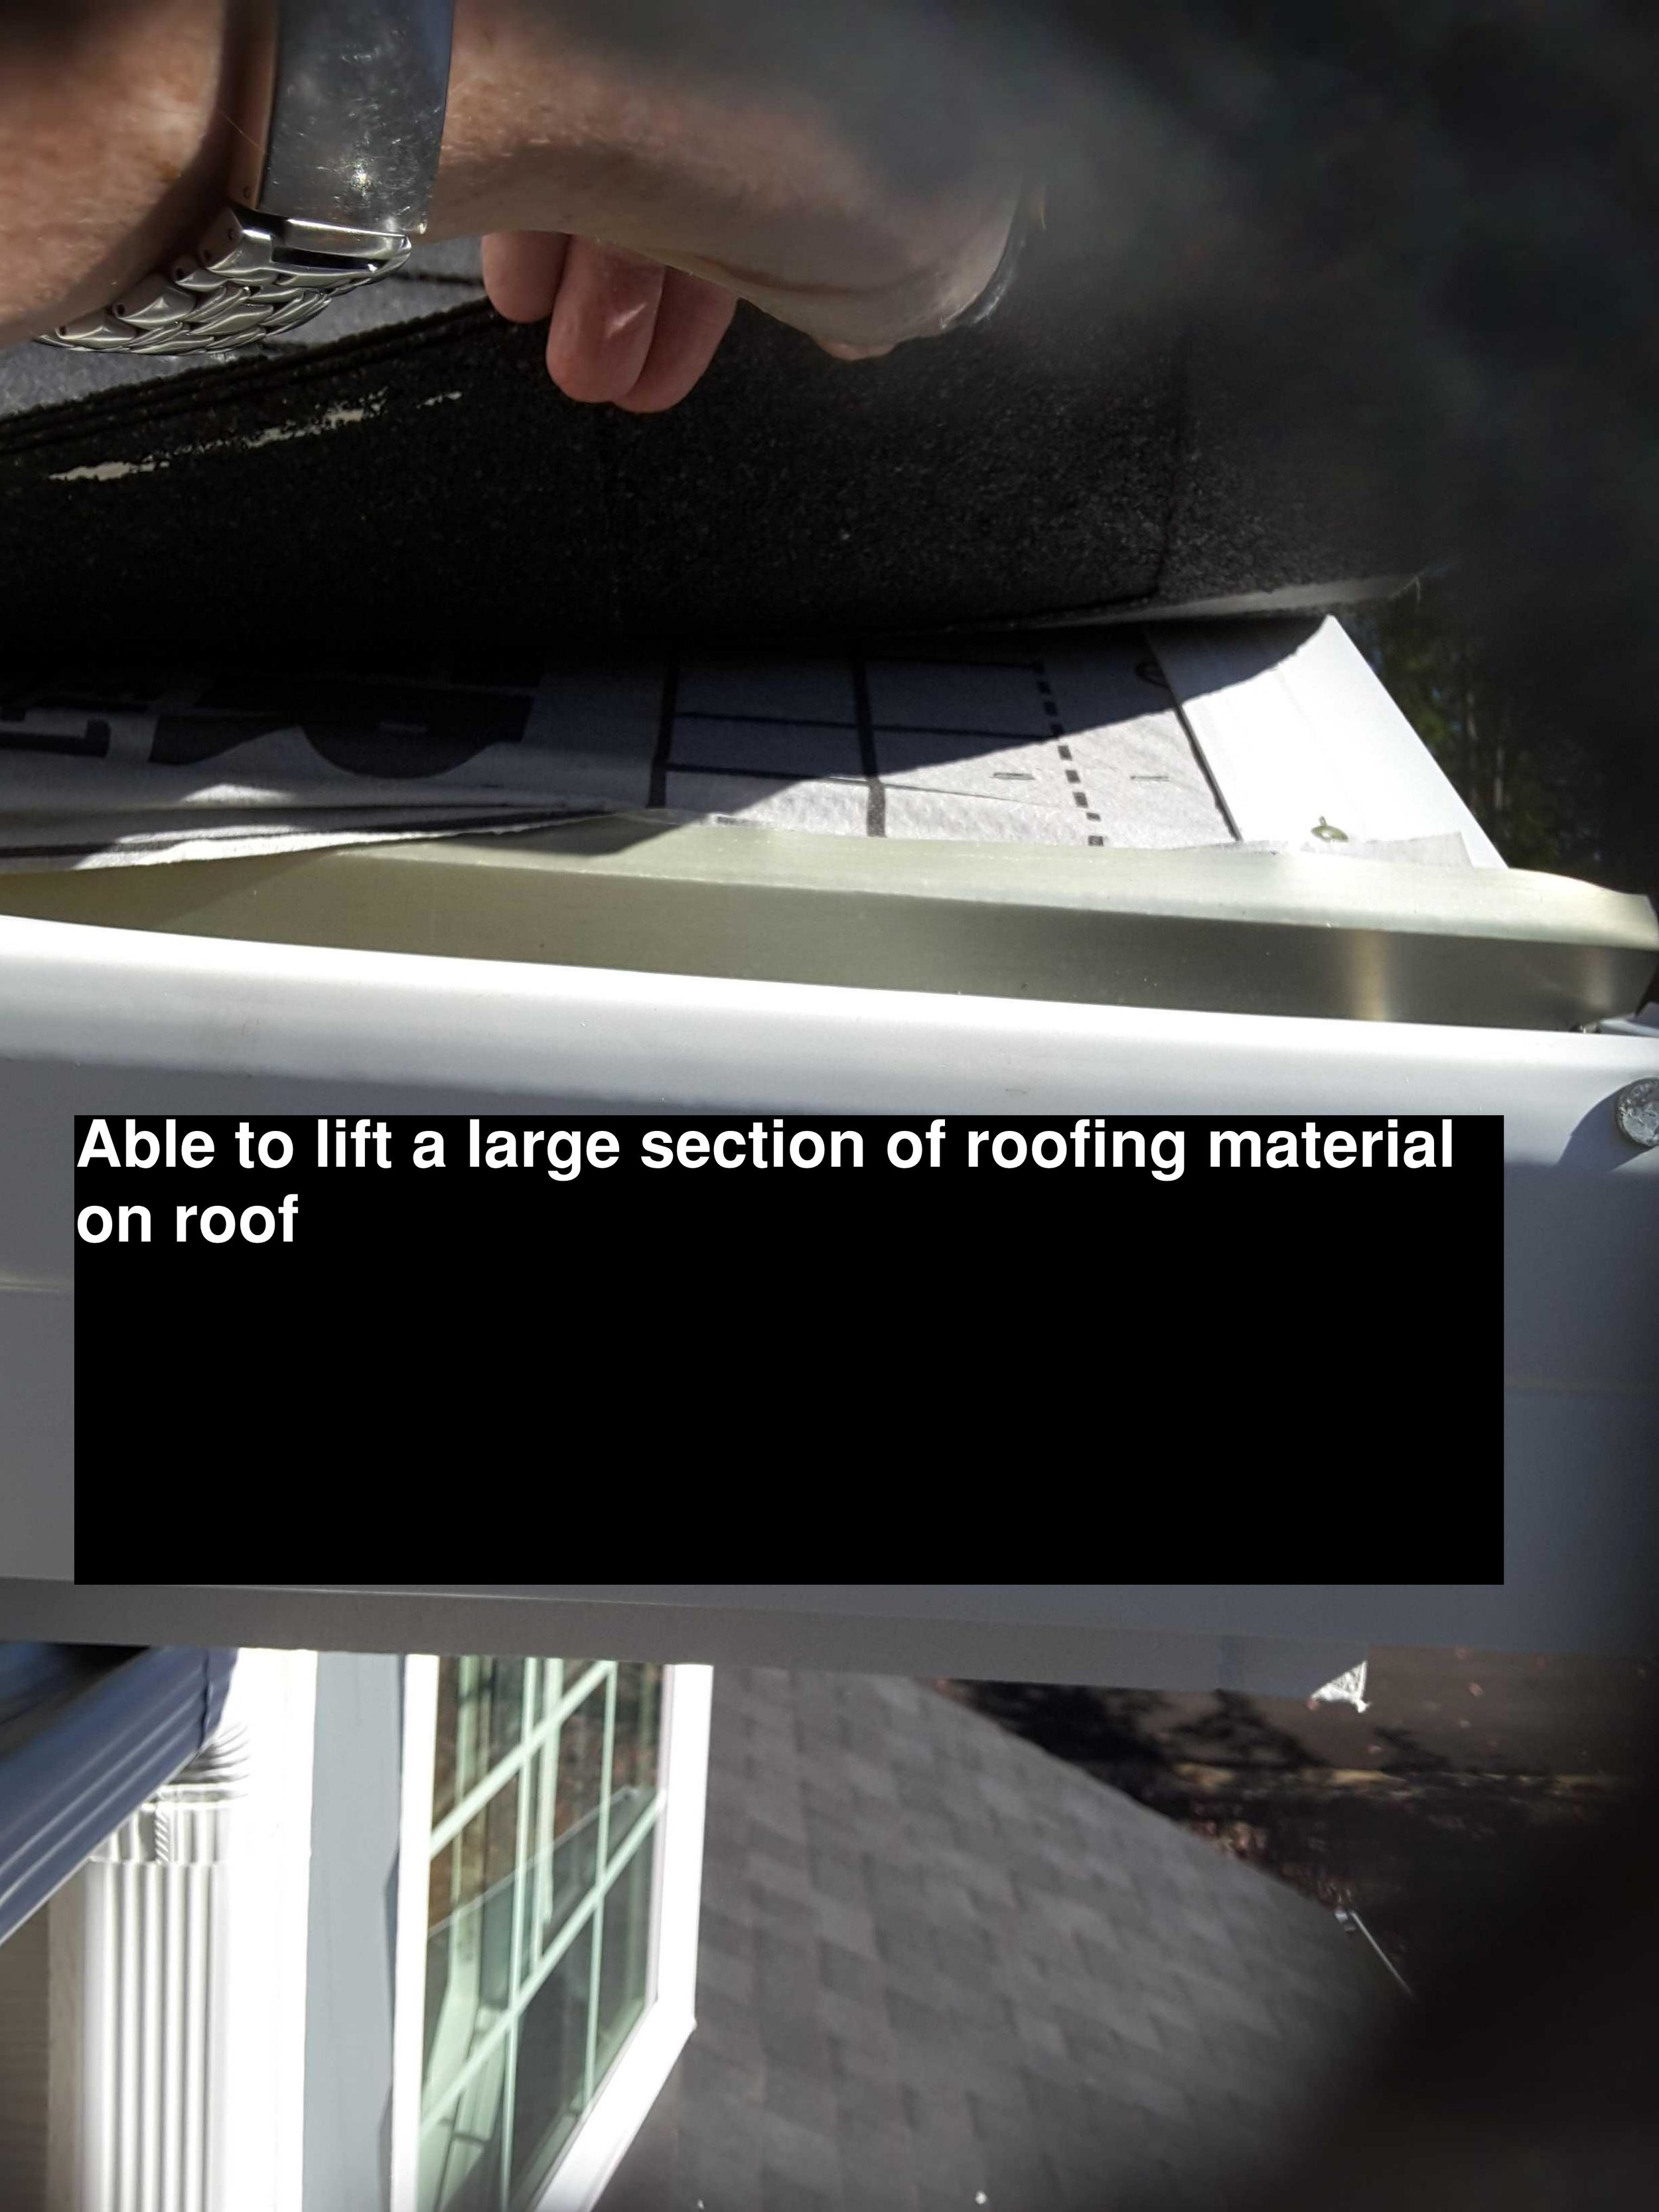 Roofing Material - For some reason I decided to lift up on this shingle tab during the inspection. The whole tab was not secured. The material used to cover roof sheeting also was installed incorrectly. Brand new roof.